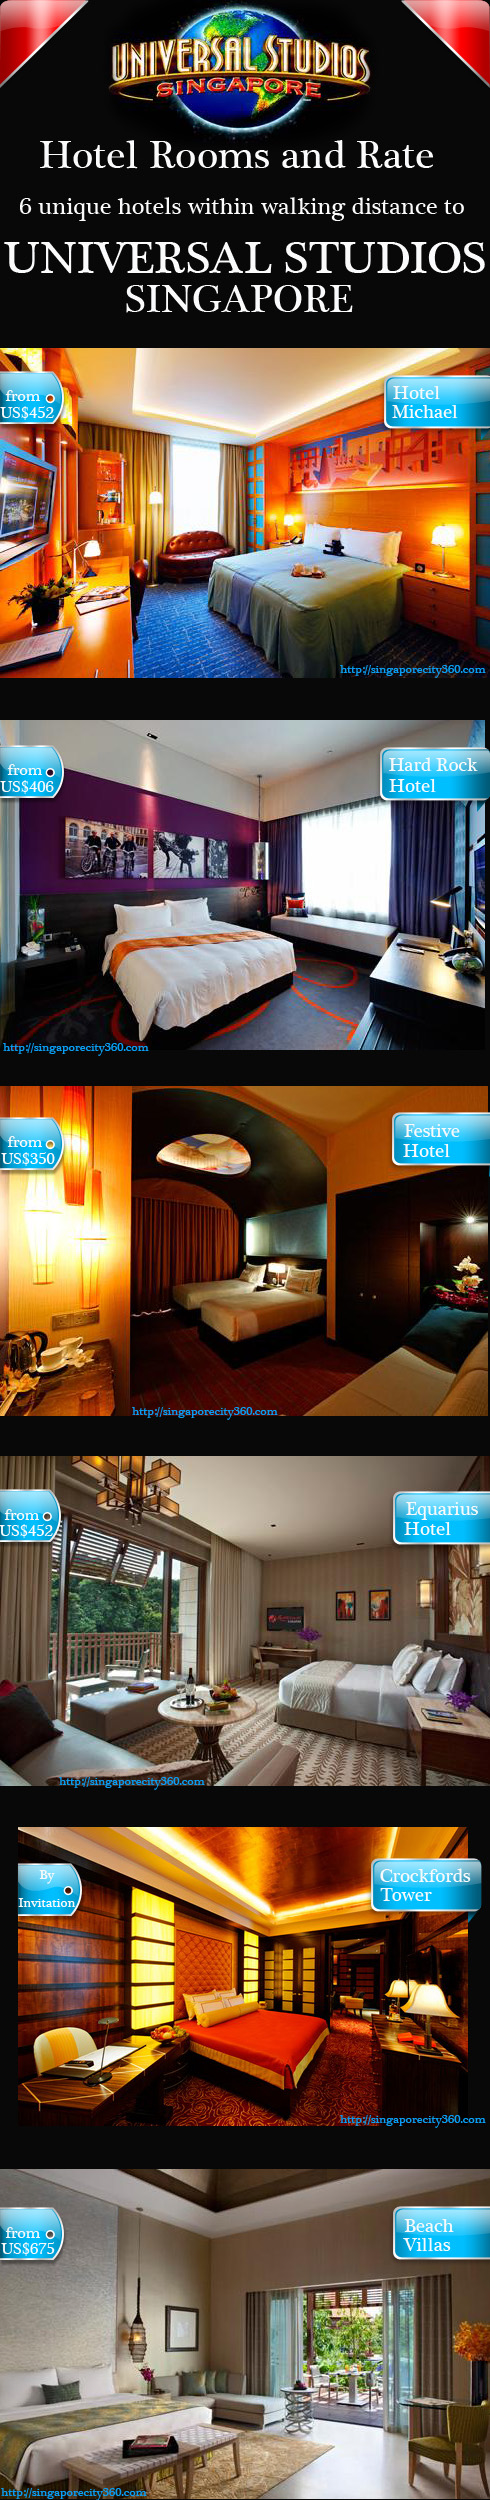 Hotels in the universal studio singapore resort world sentosa resorts world sentosa hotel room rate comparison table gumiabroncs Gallery